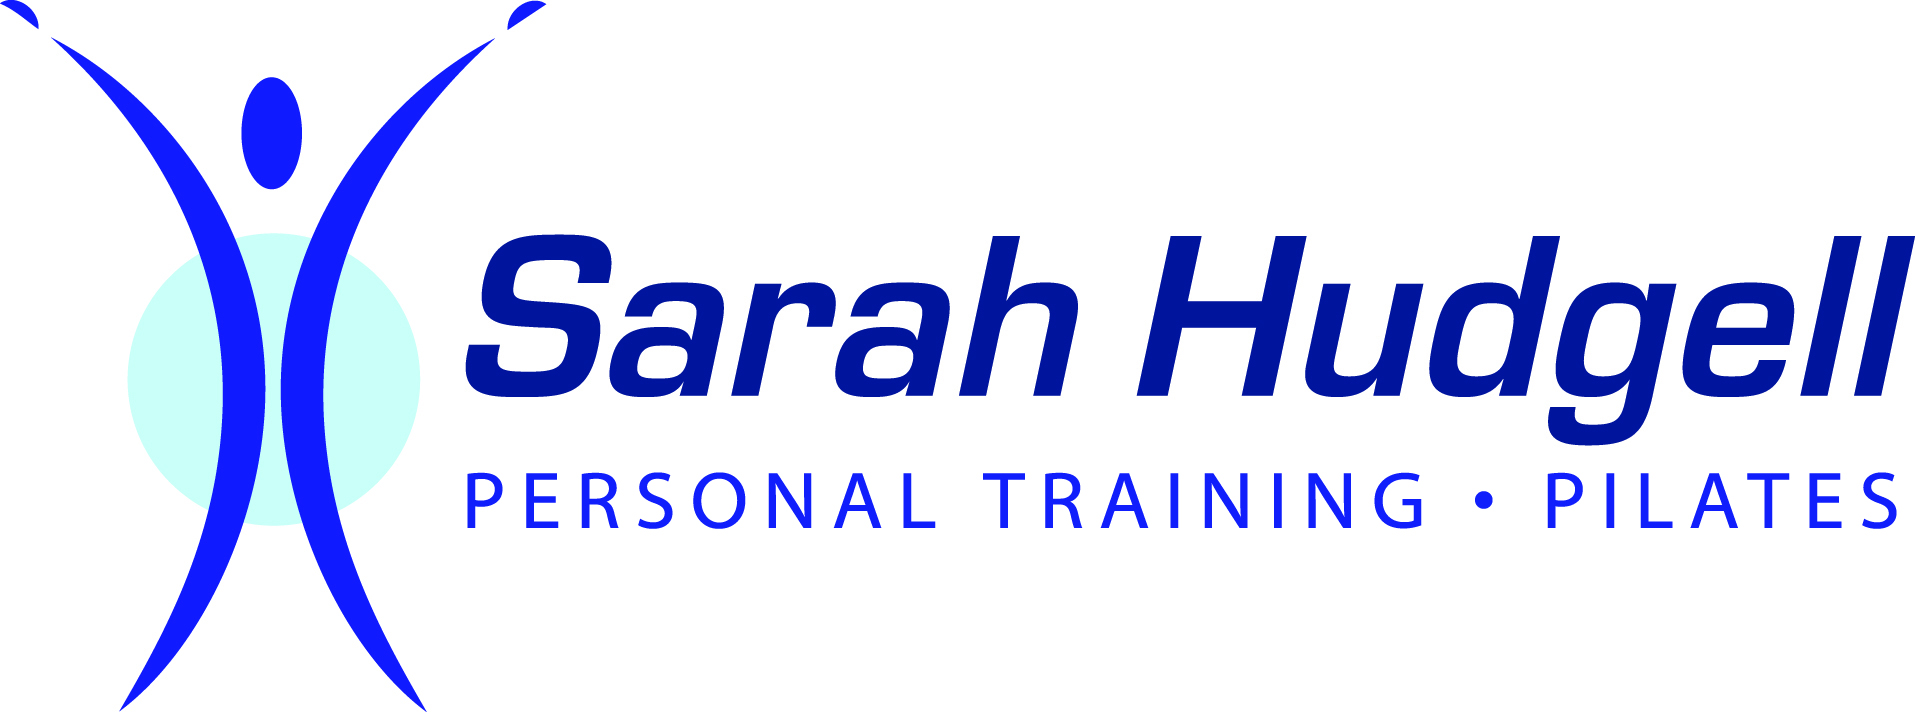 FINAL LOGO (SARAH HUDGELL)